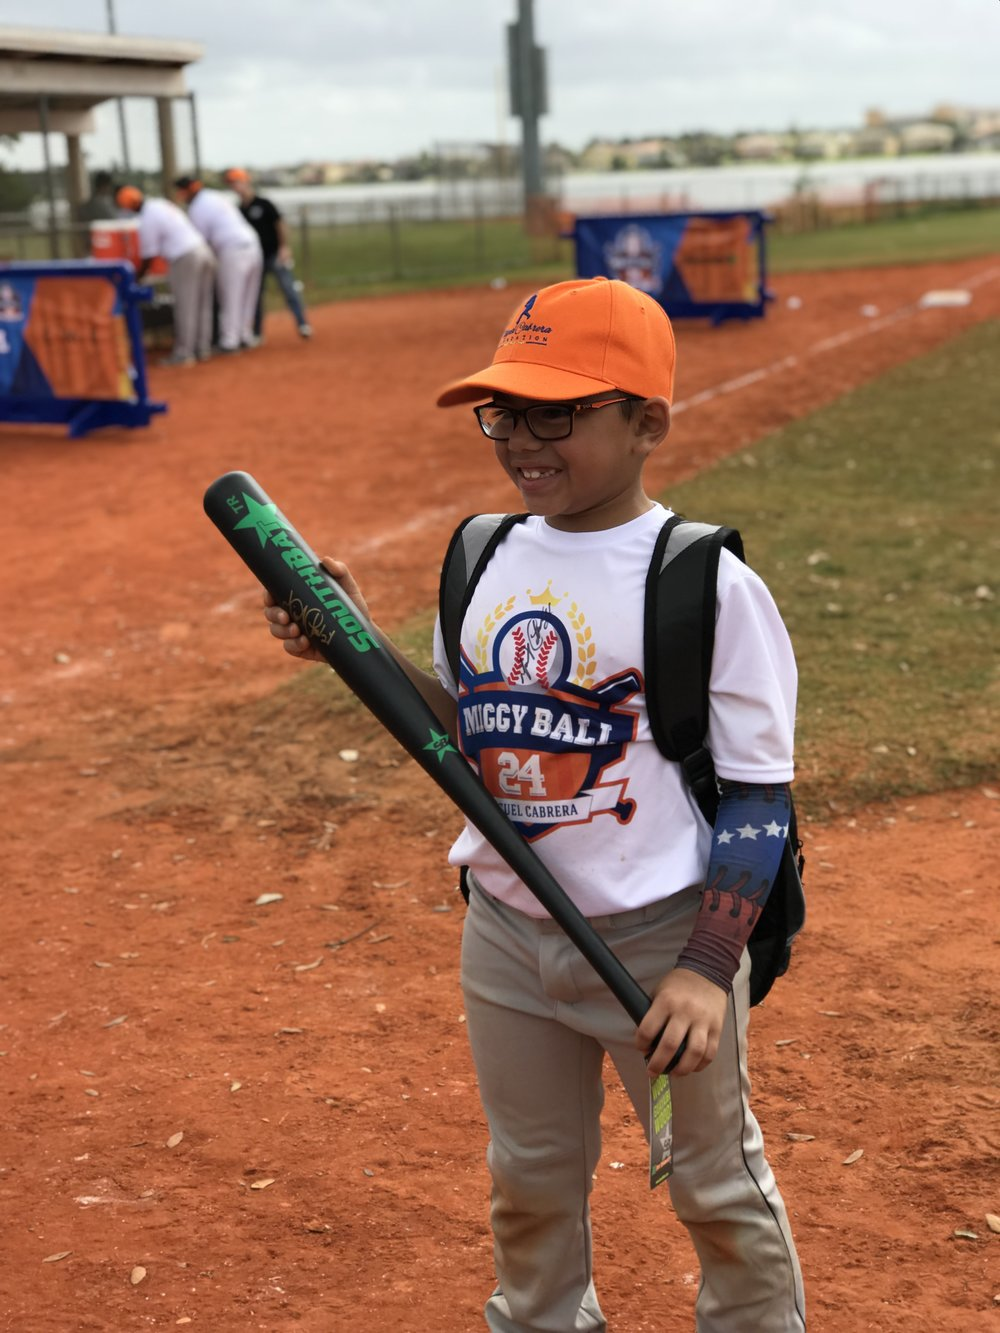 4 Miguel Cabrera Southbat Donate bats to kids.JPG